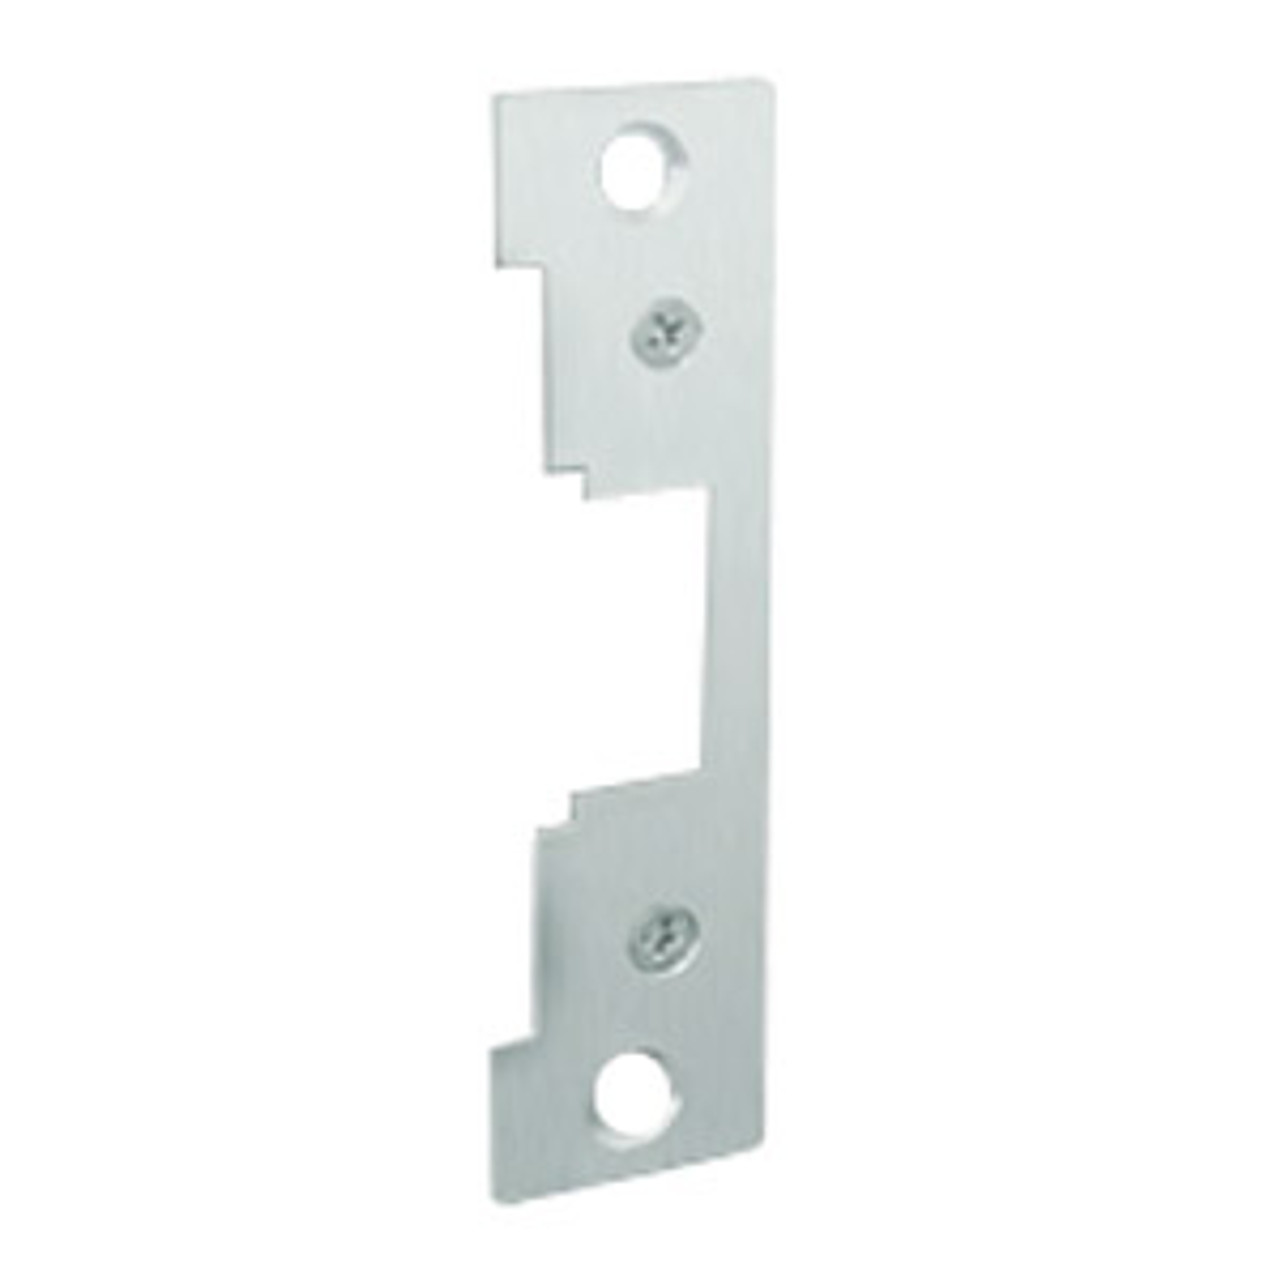 """791-629 Hes 4-7/8 x 1-1/4"""" Faceplate in Bright Stainless Steel Finish"""